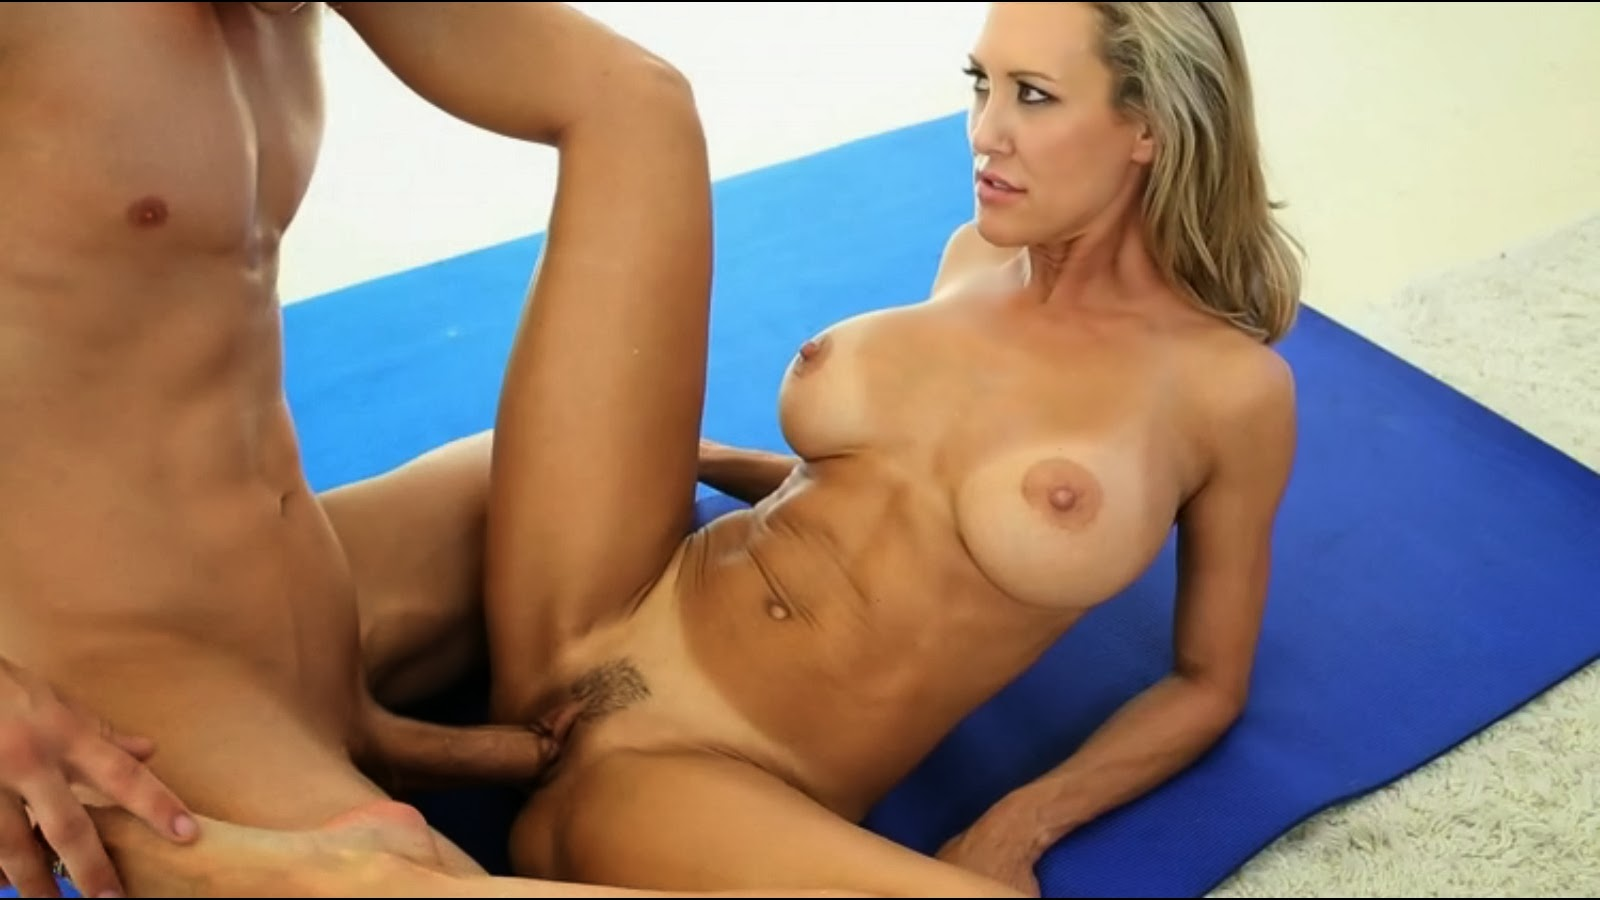 cute latin chick rubbing her clit and pussy